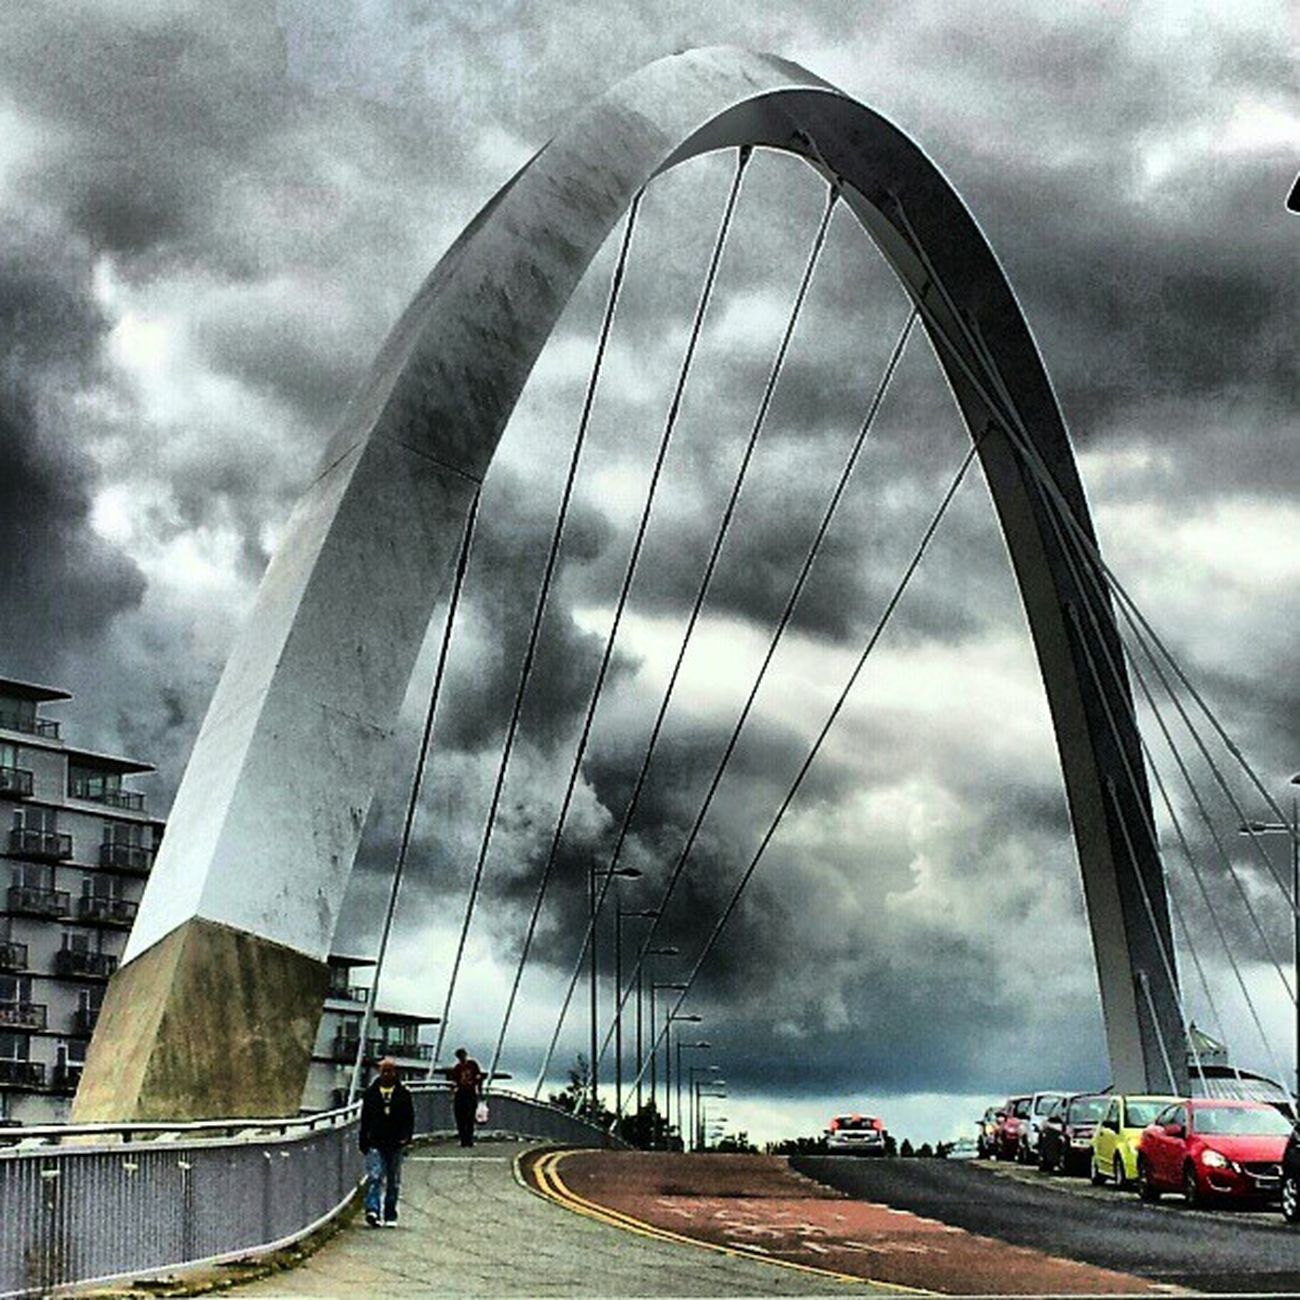 'Squinty Bridge' SquintyBridge Glasgow  Scotland Bridgeporn bridges architectureporn Structure Cloudporn sky skyback skyporn sky_collection igtube Igers igdaily Tagstagram most_deserving icatch BD thebestshooter iphonesia photooftheday insta_shutter Instagood insta_pick